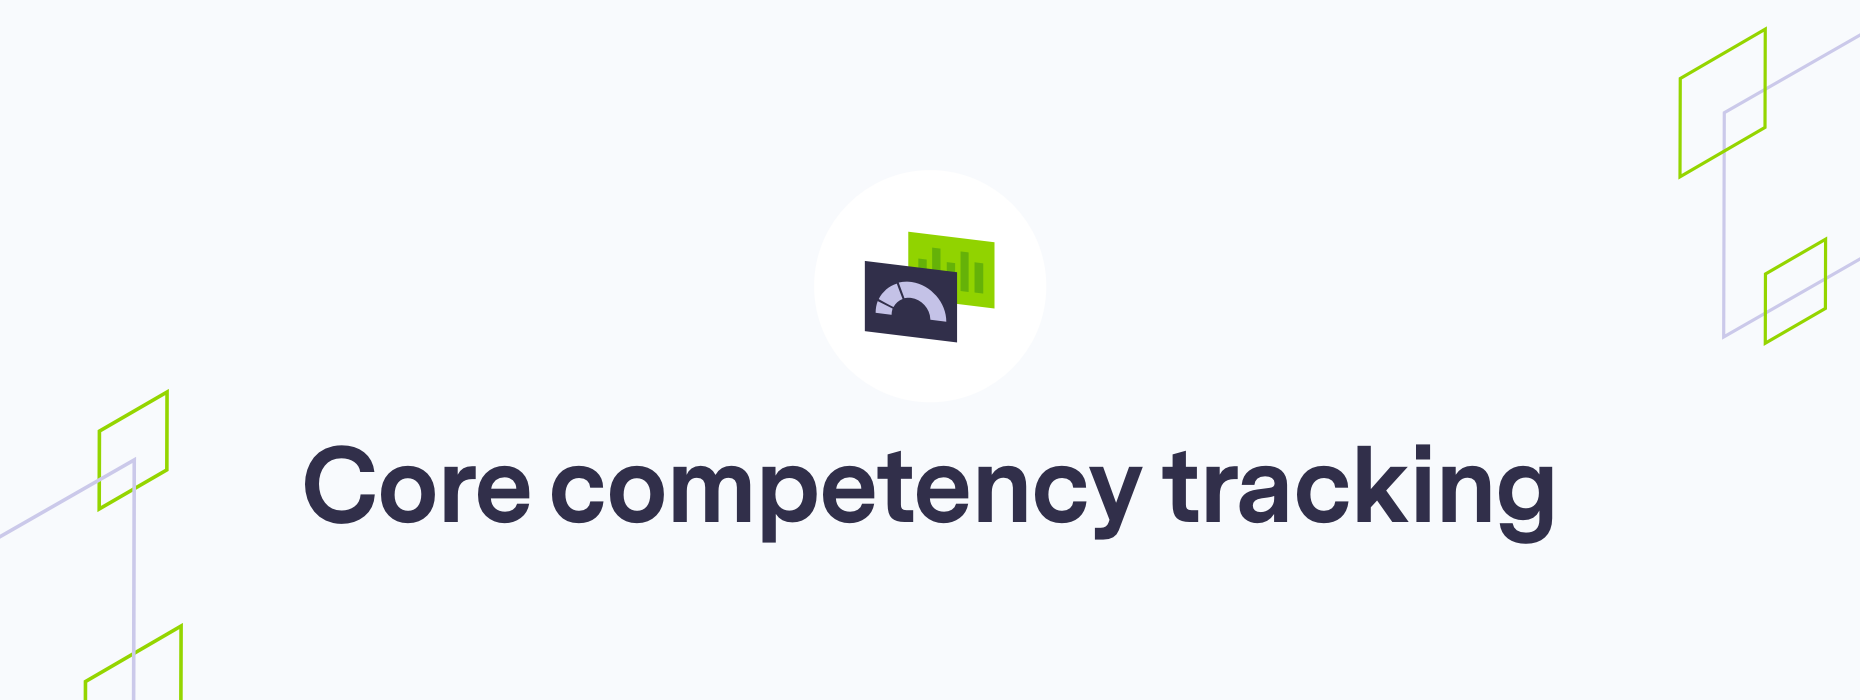 Core competency tracking